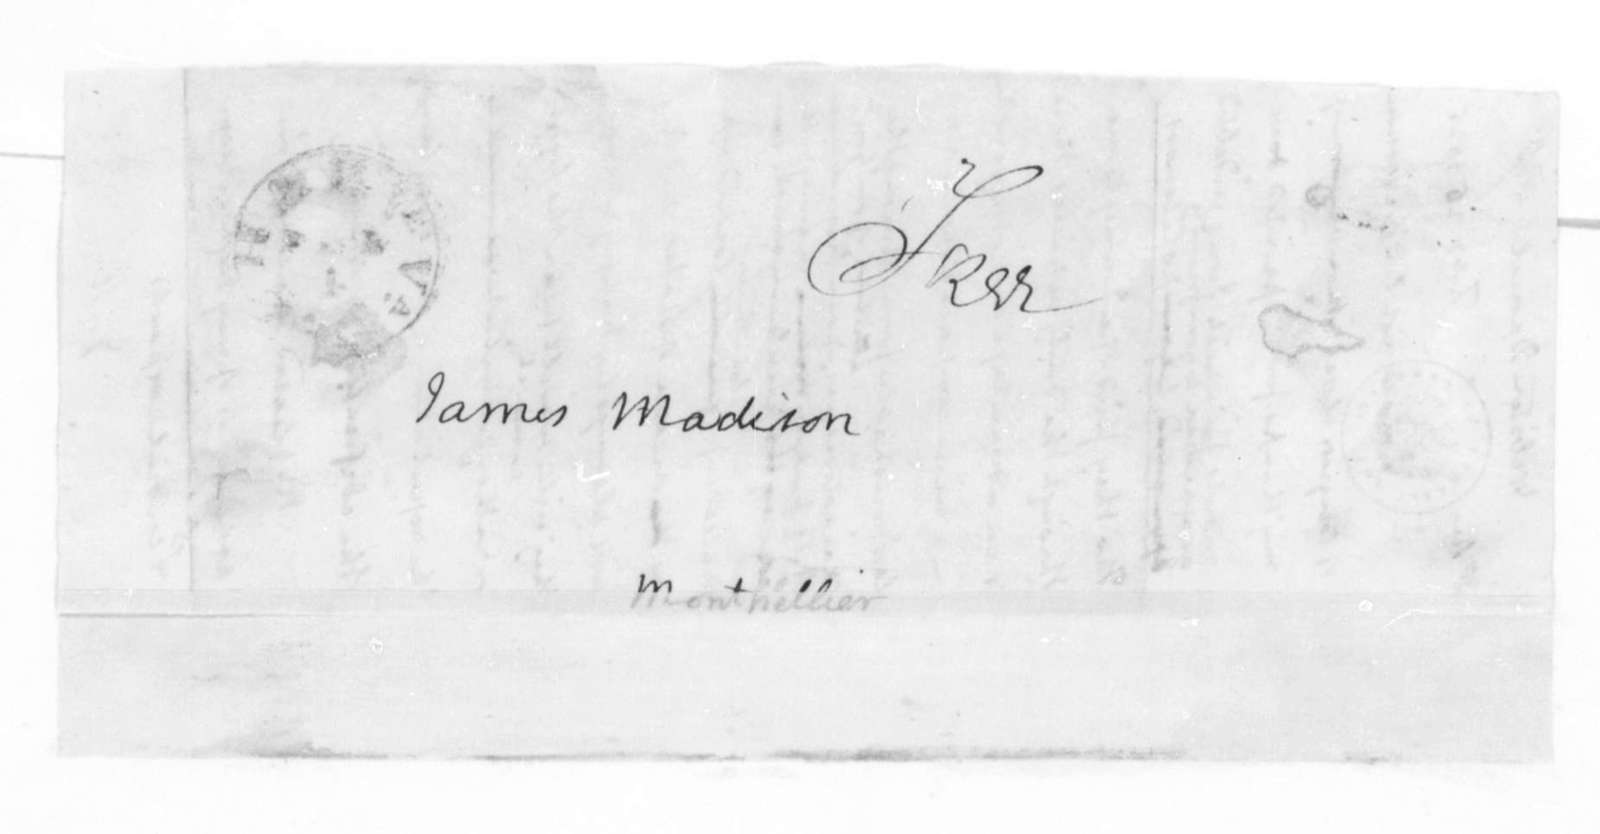 James Madison to Daniel Webster, February 25, 1825.